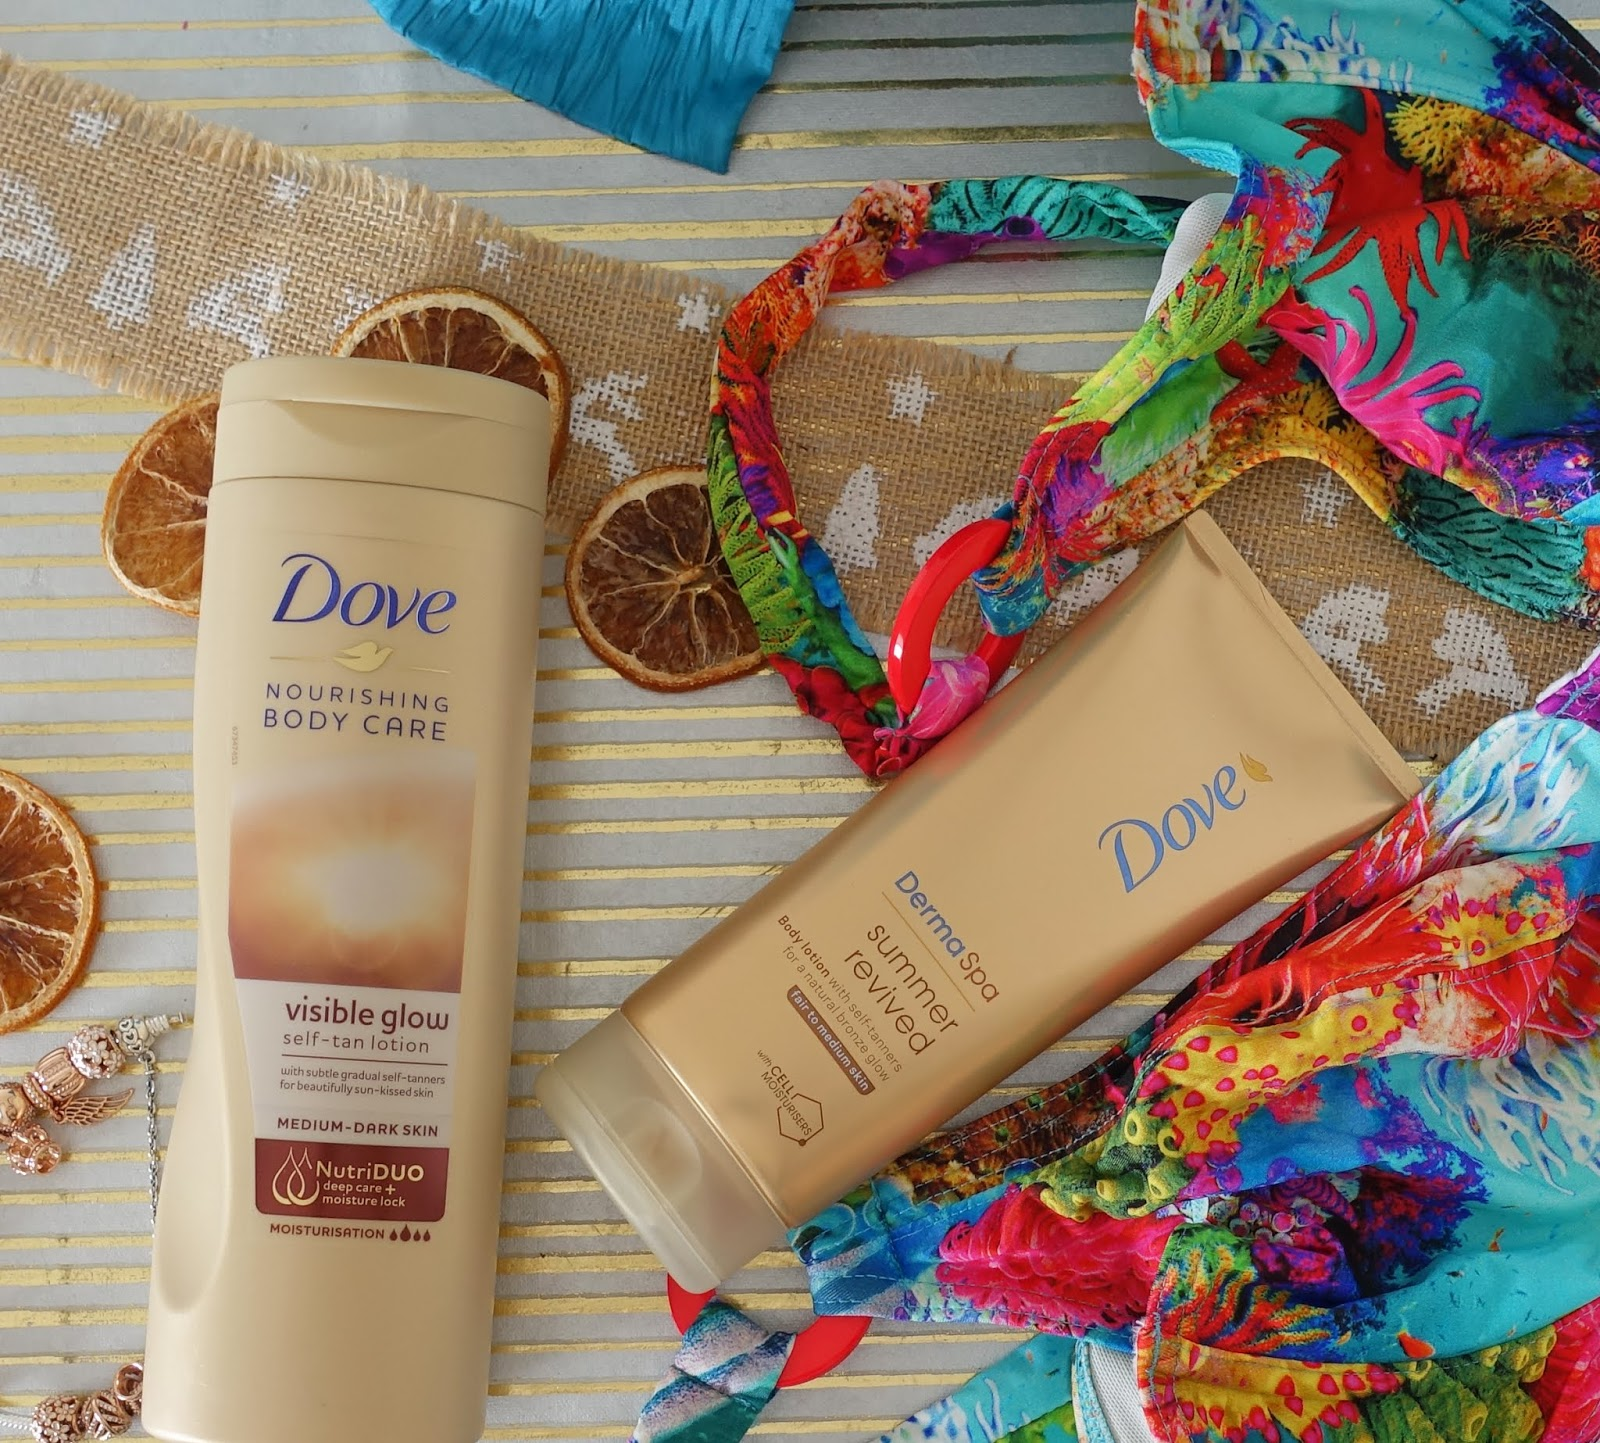 Dove Visible Glow and Summer Revived gradual tan products in a summer background  from Is This Mutton dot com